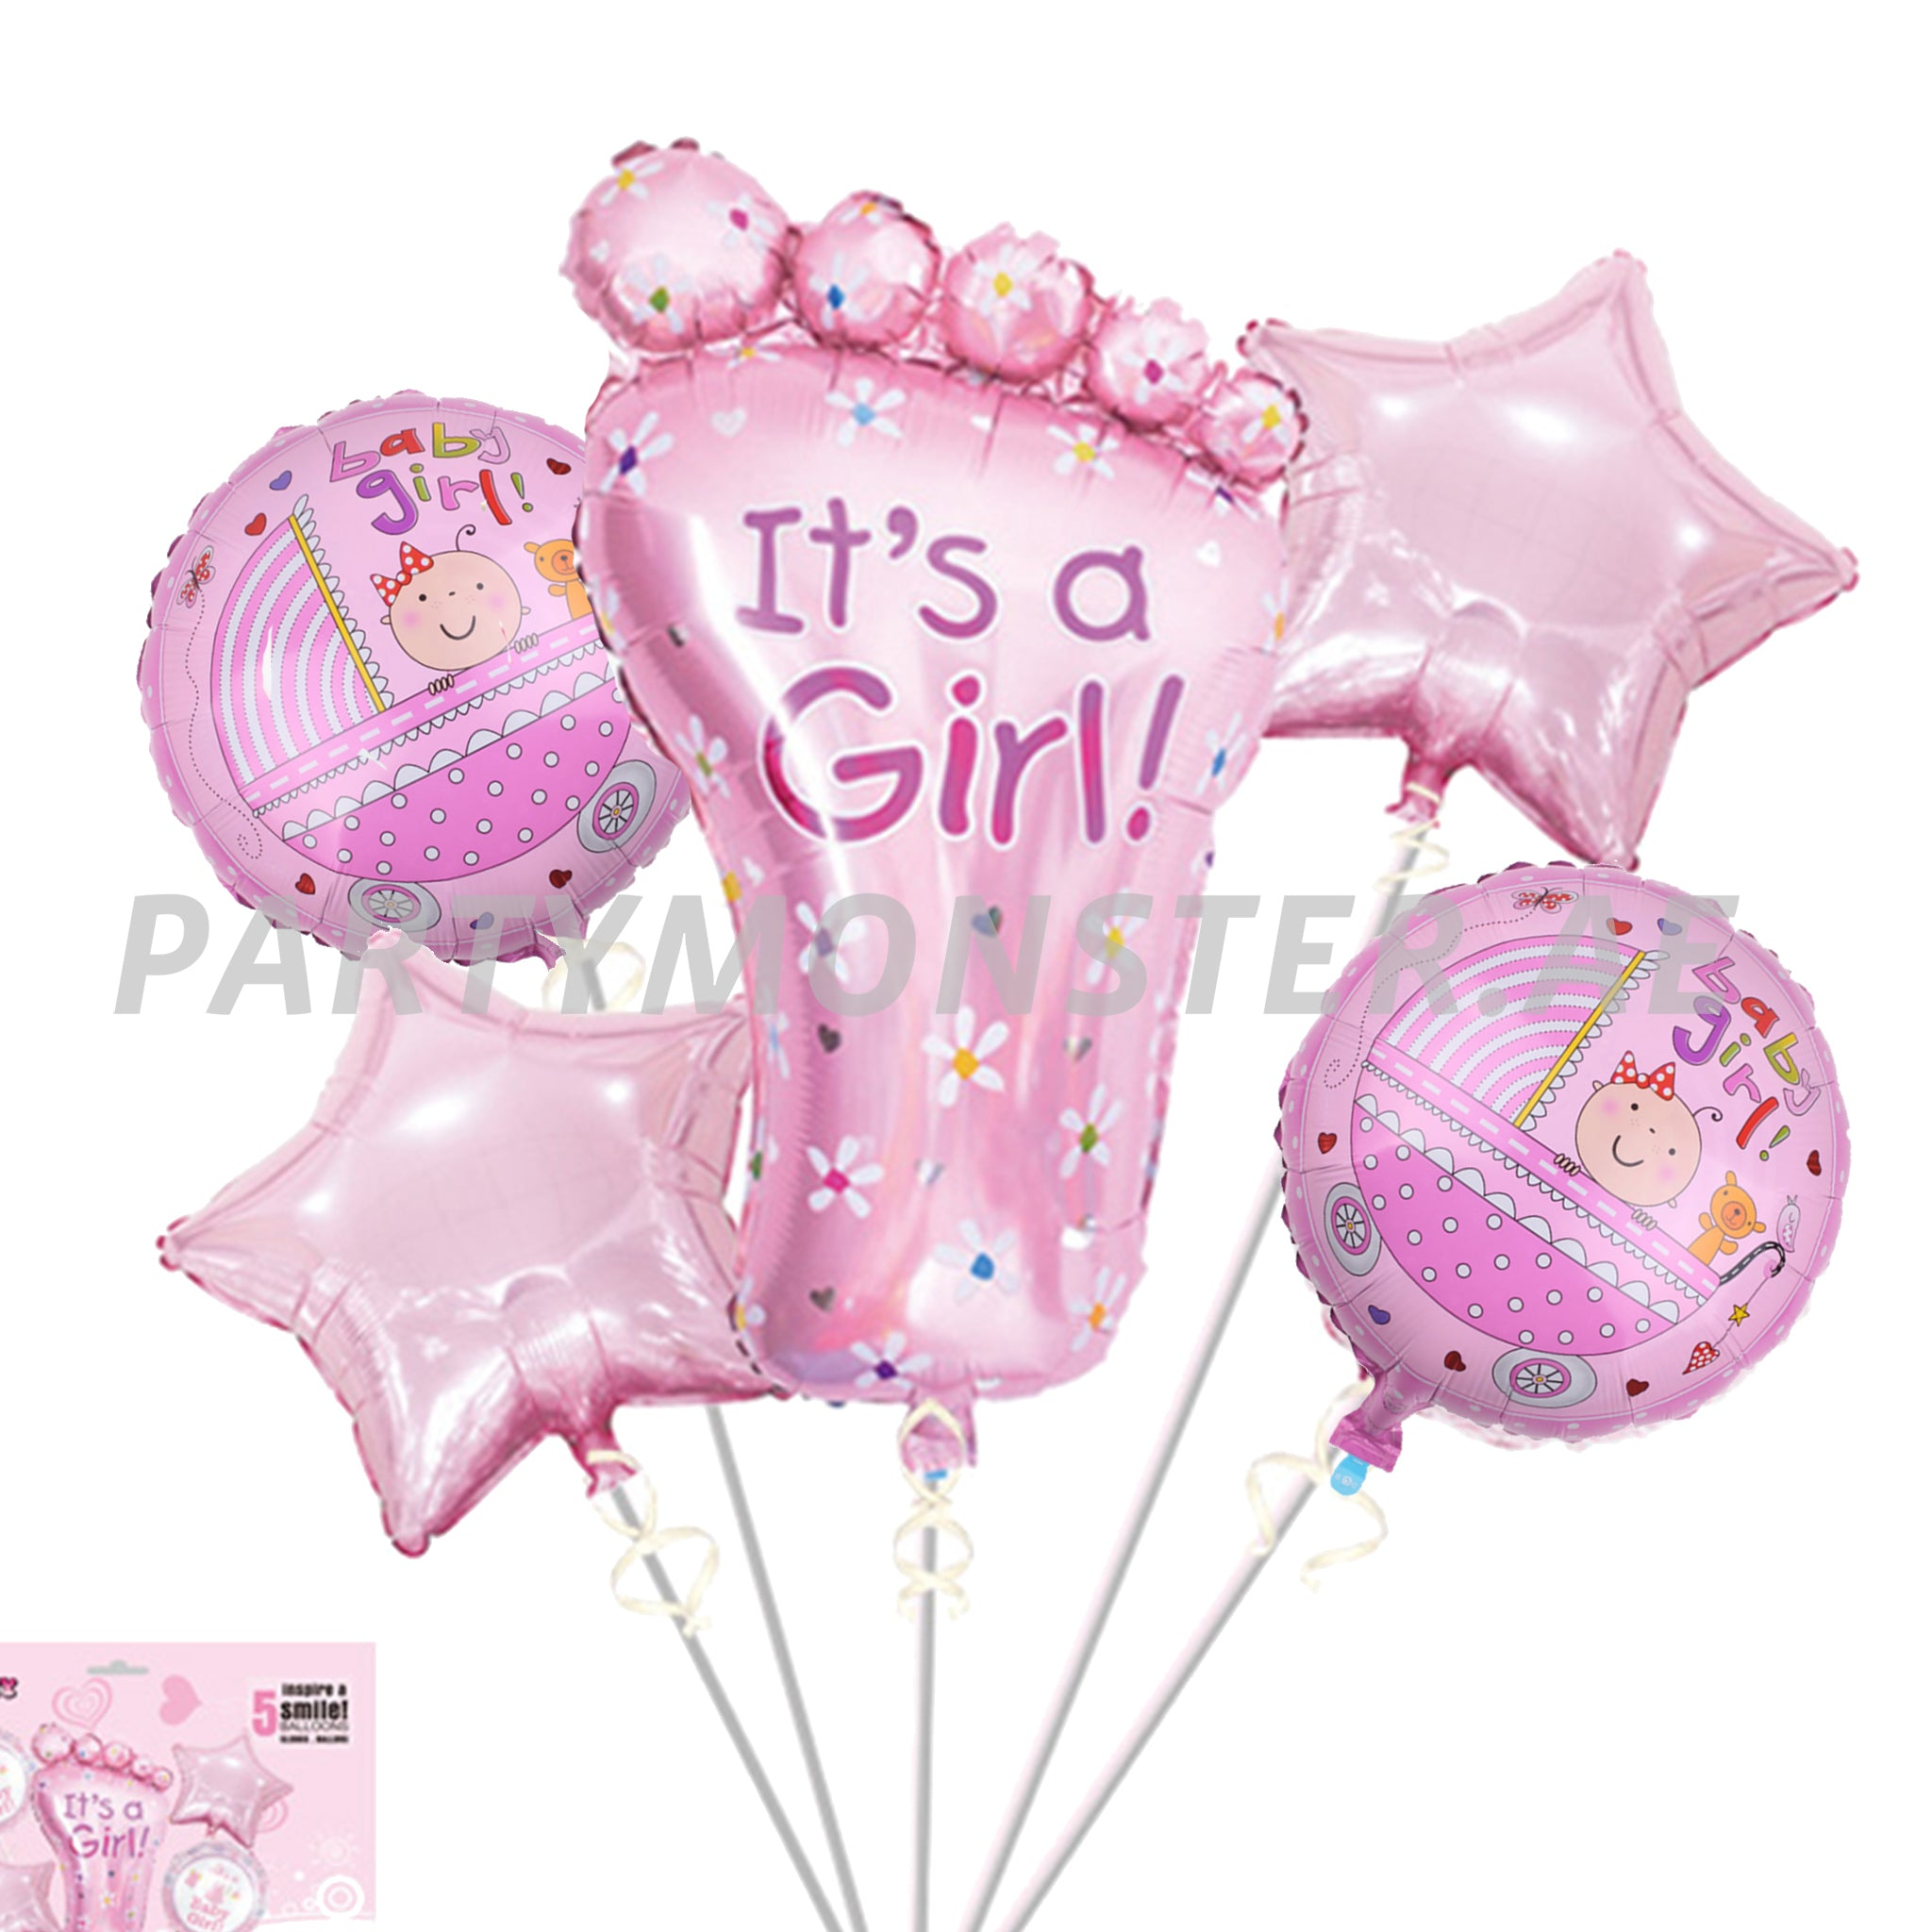 Baby Girl foot foil balloons bouquet - PartyMonster.ae